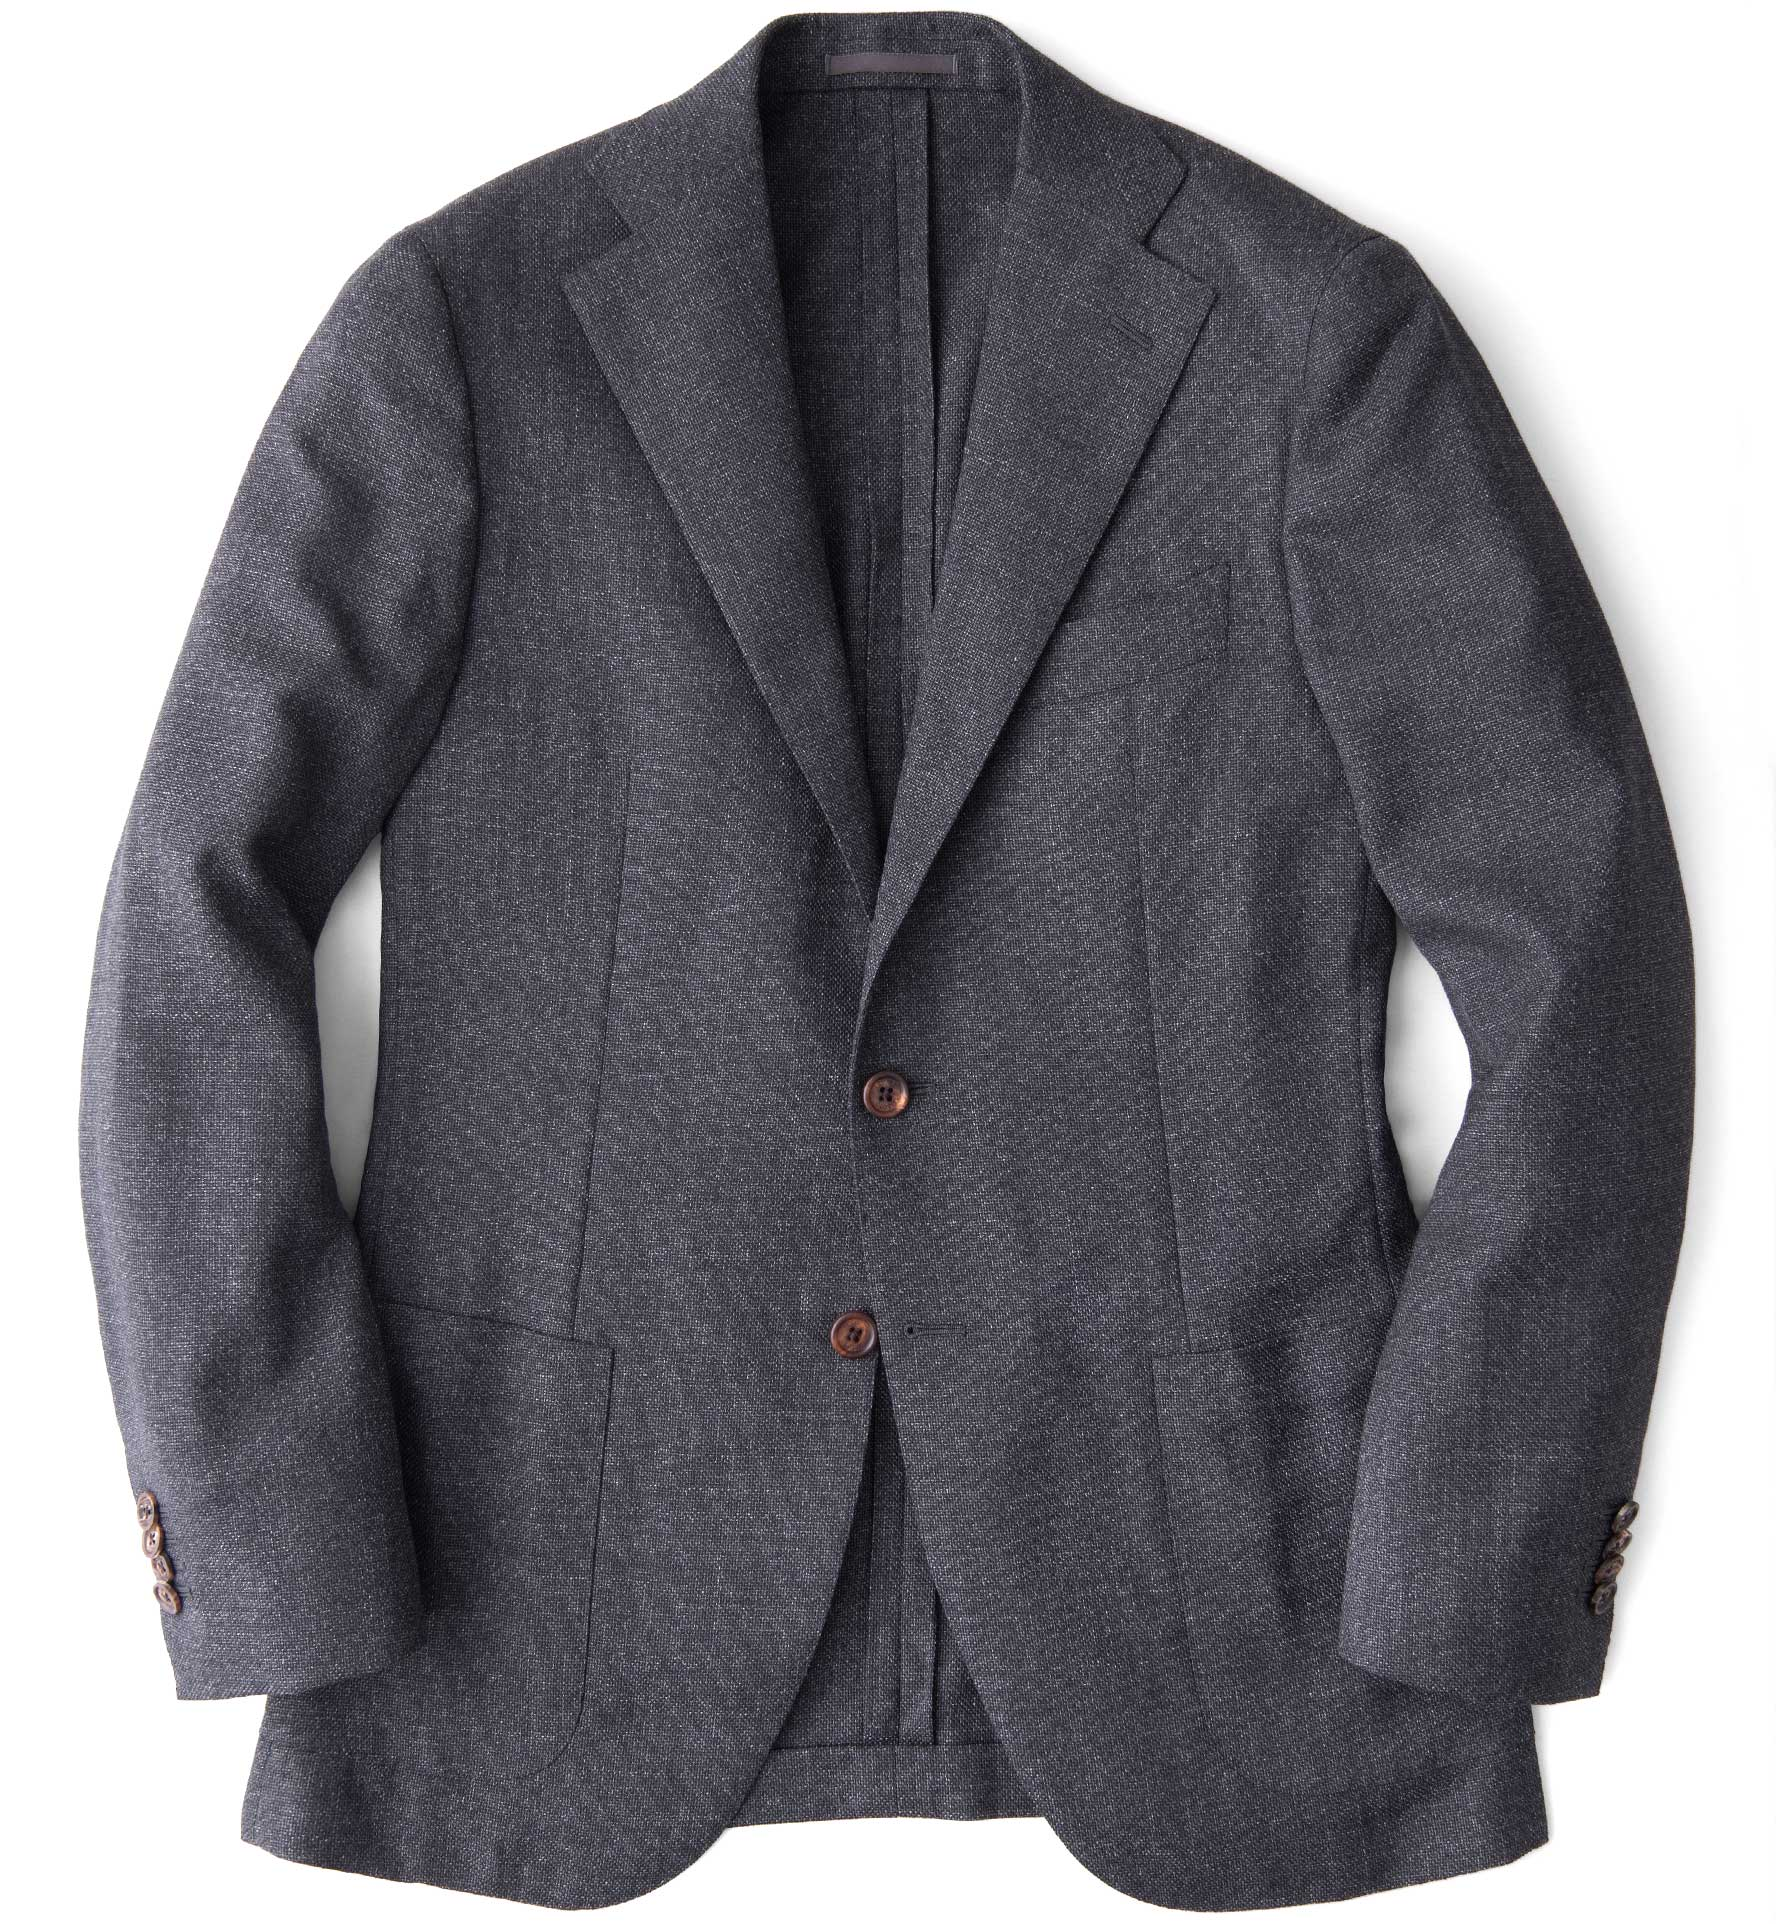 Zoom Image of Hudson Grey Melange Wool Hopsack Jacket